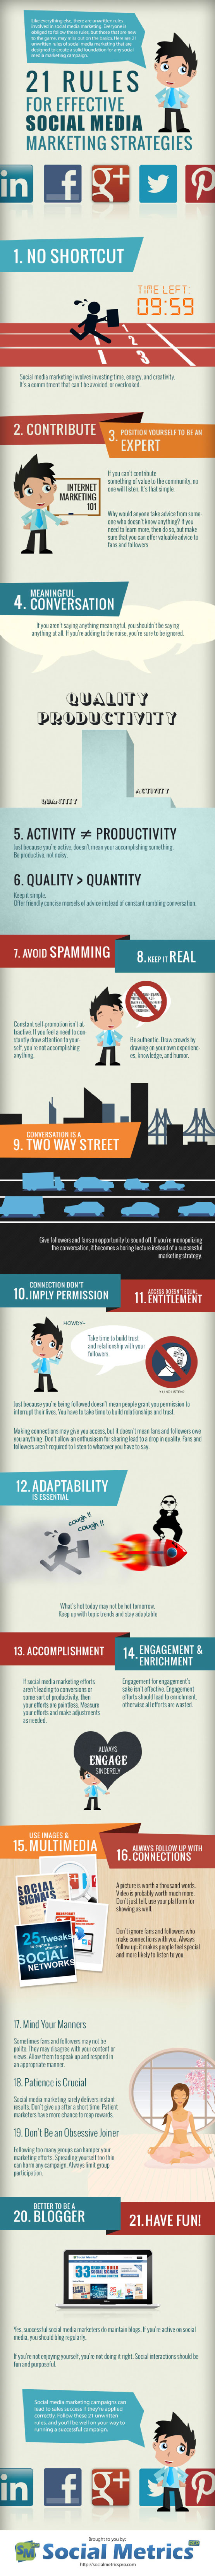 Effective Social Marketing Rules-Infographic